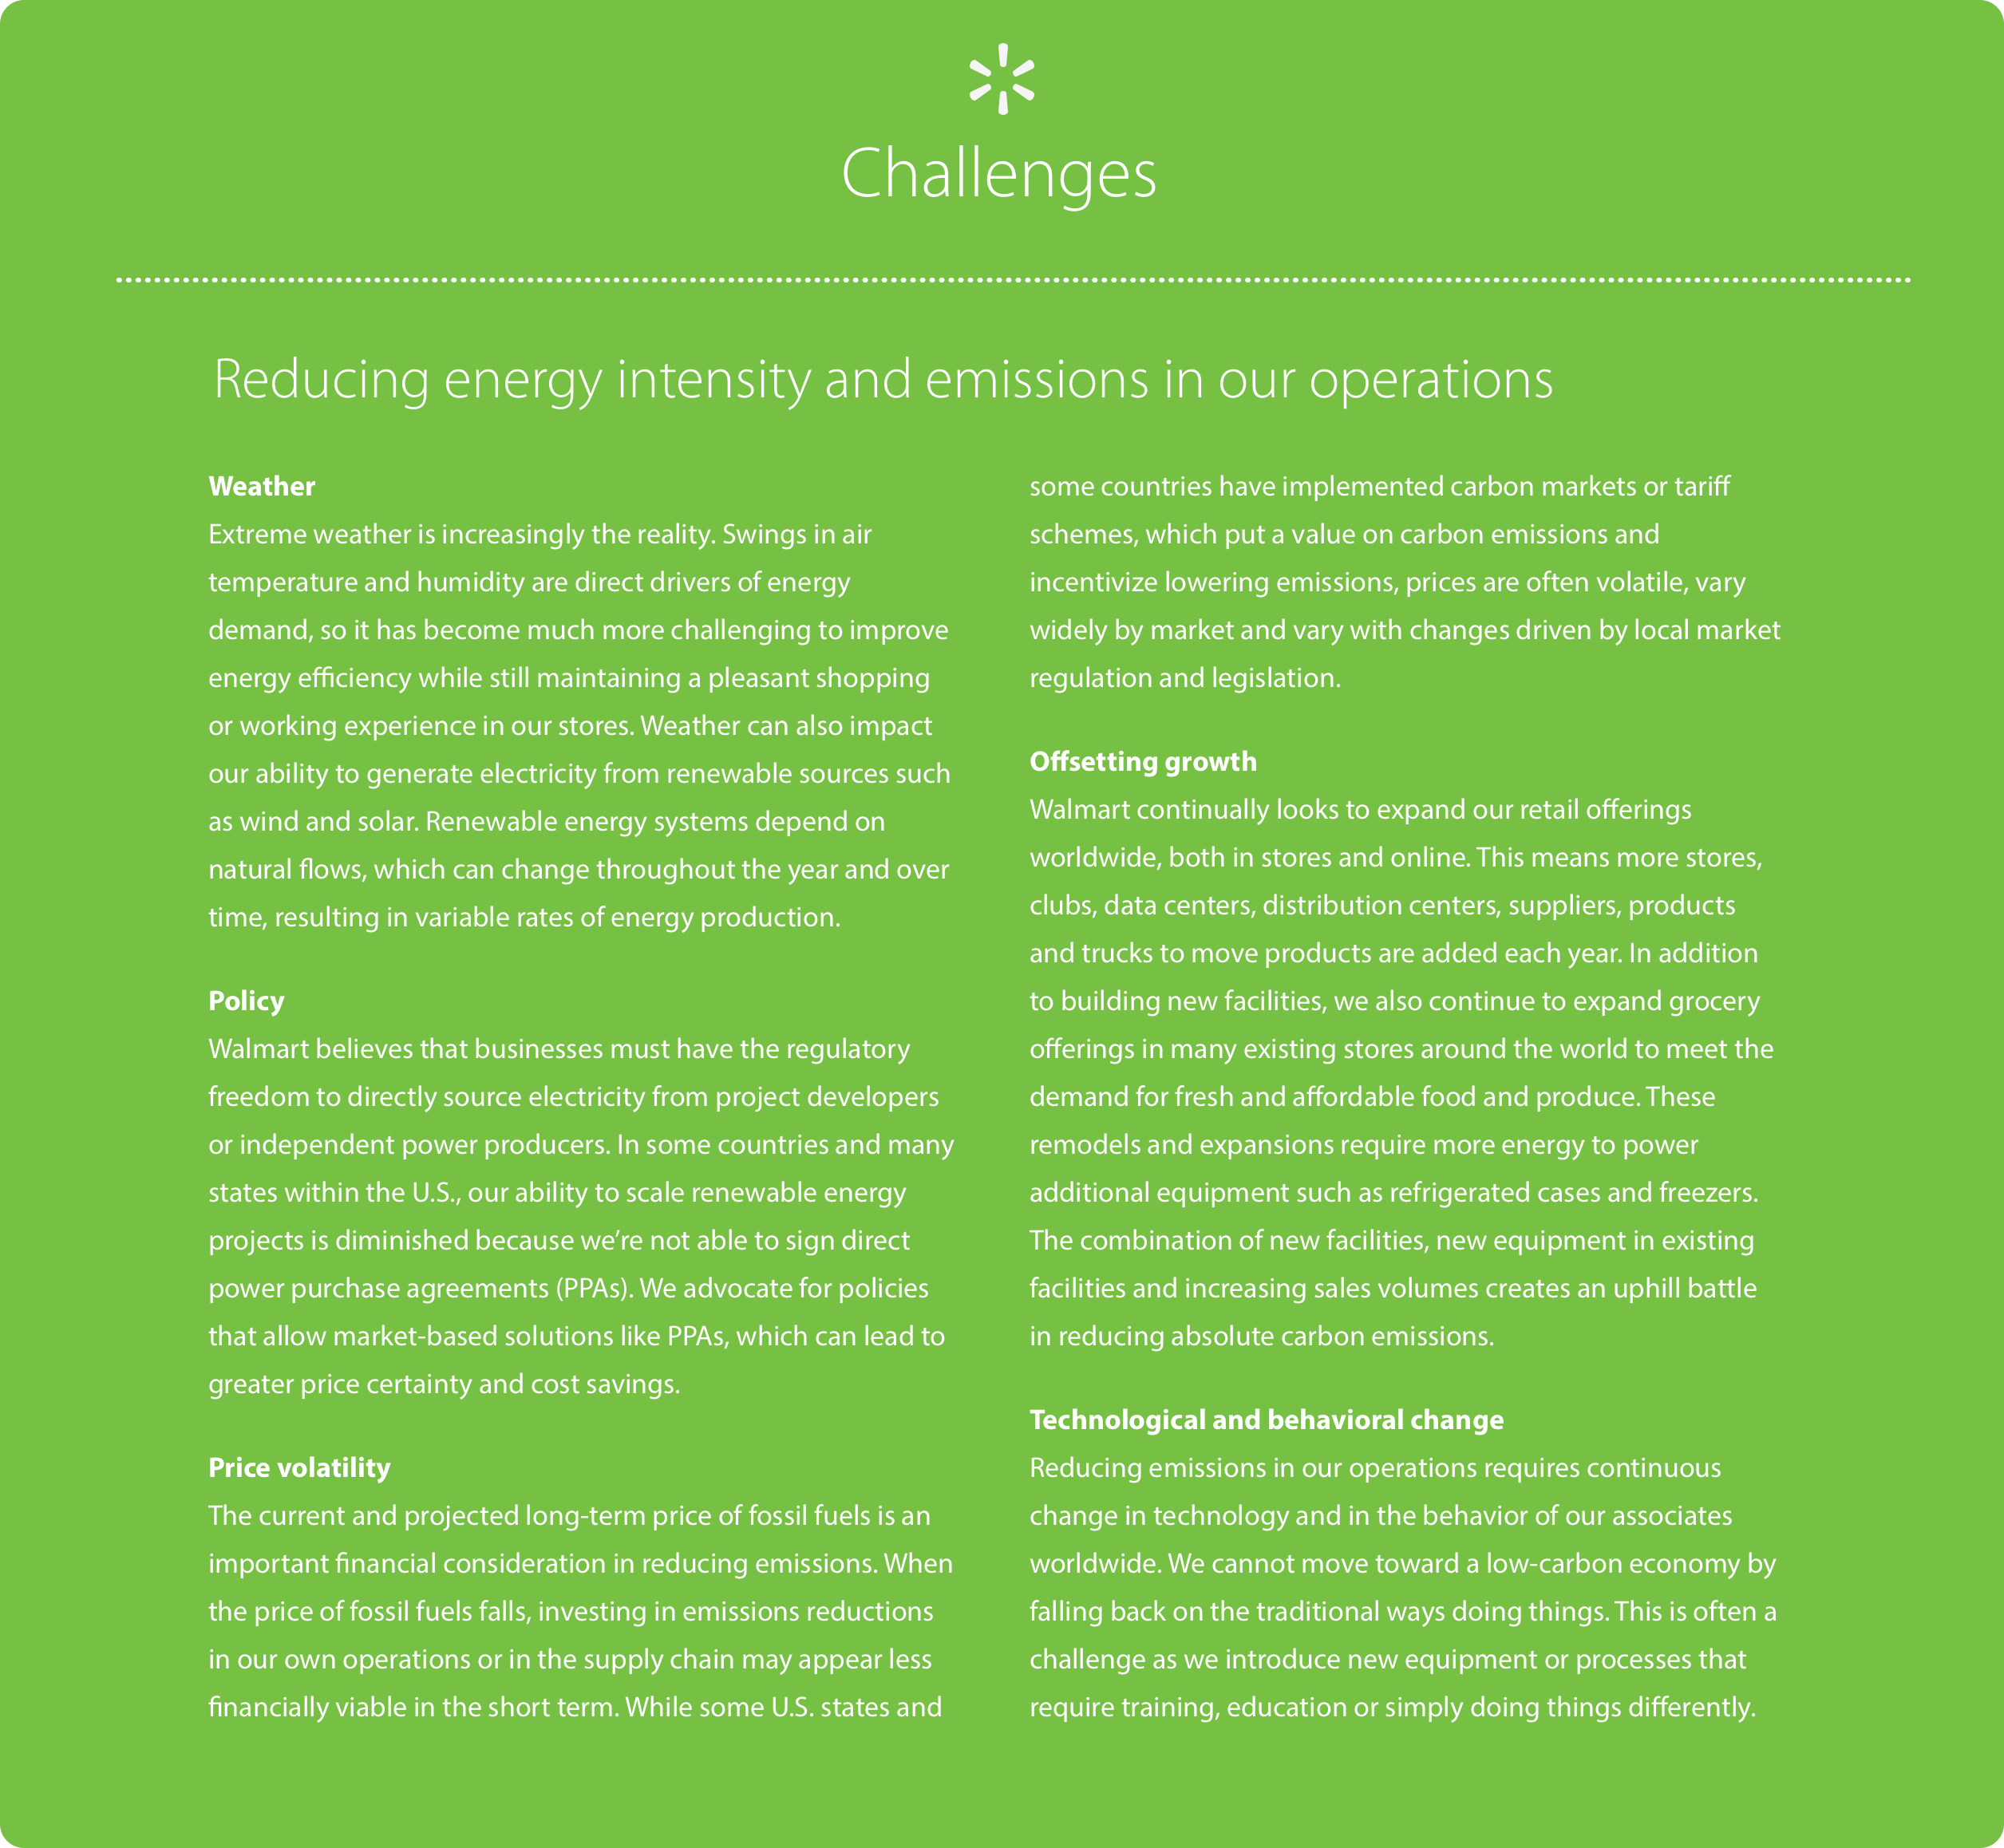 Energy and emissions challenges